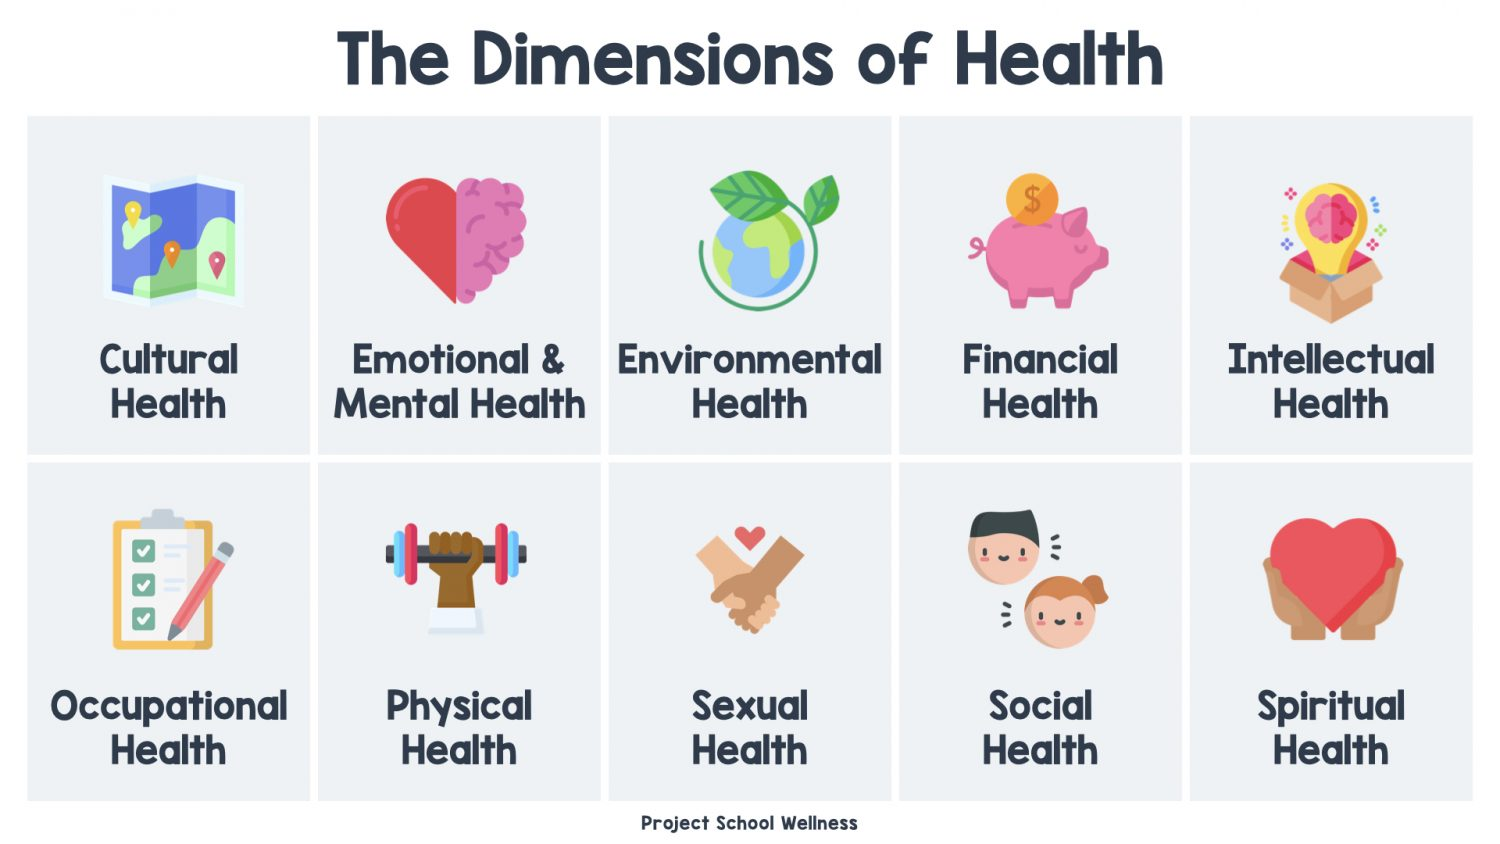 The Dimensions of Health - the Ultimate Guide for Teaching Health - The Ultimate Guide for Teaching Health, everything you need to know about teaching comprehension, skills-based health education. - A Project School Wellness skills-based health resources. Download free advocacy lesson plans, a skills-based health lesson planning template, and health education scope and sequence template